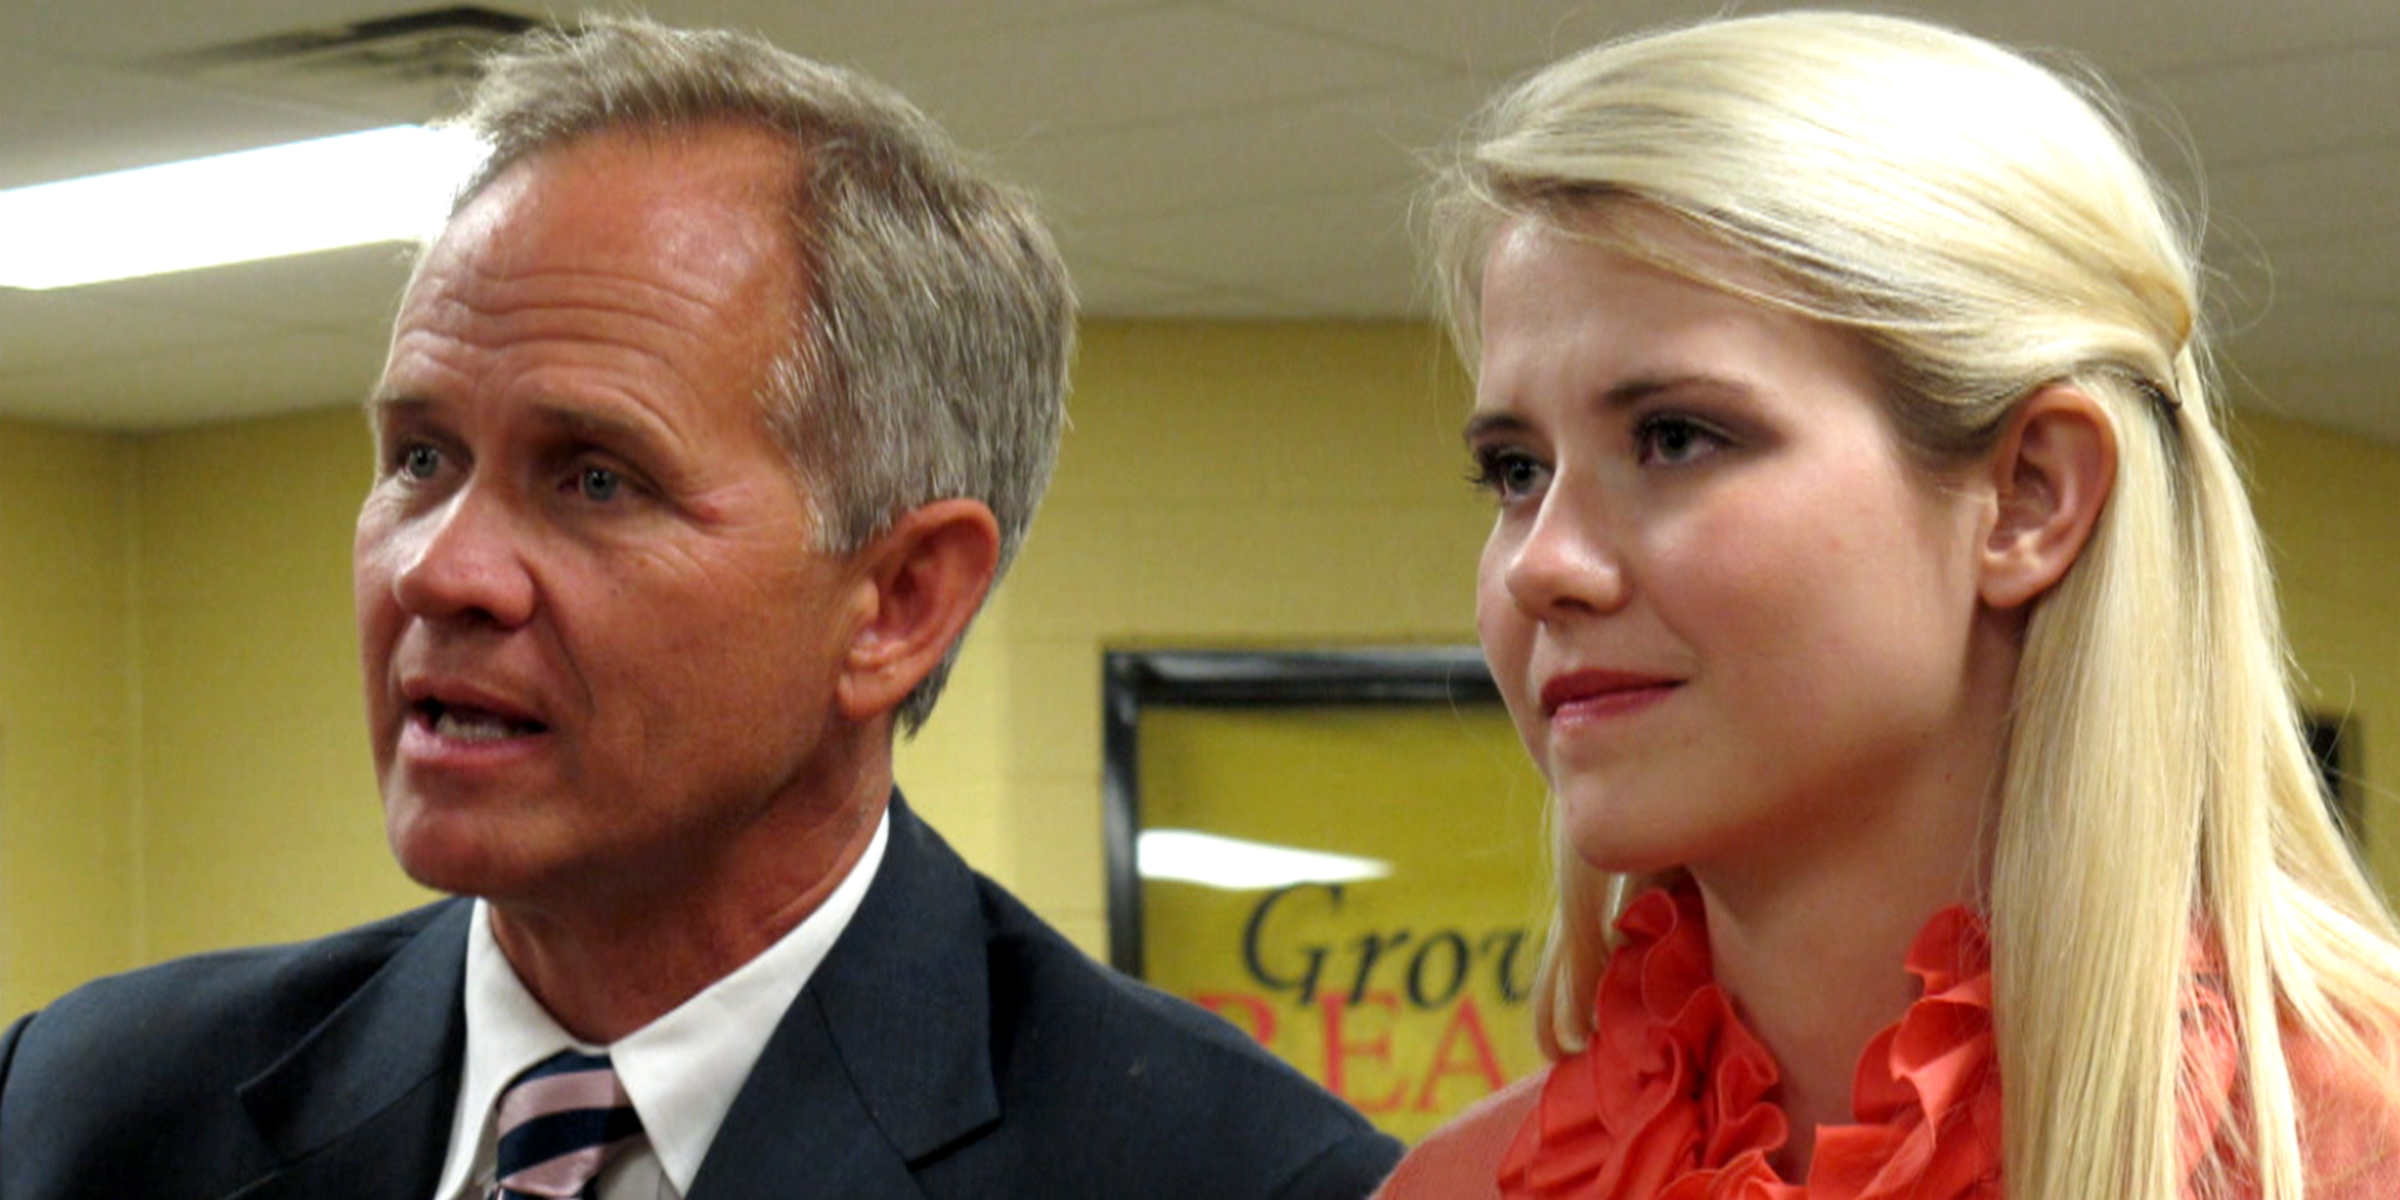 Elizabeth Smart's father on coming out as gay: I can't 'look back with regret'